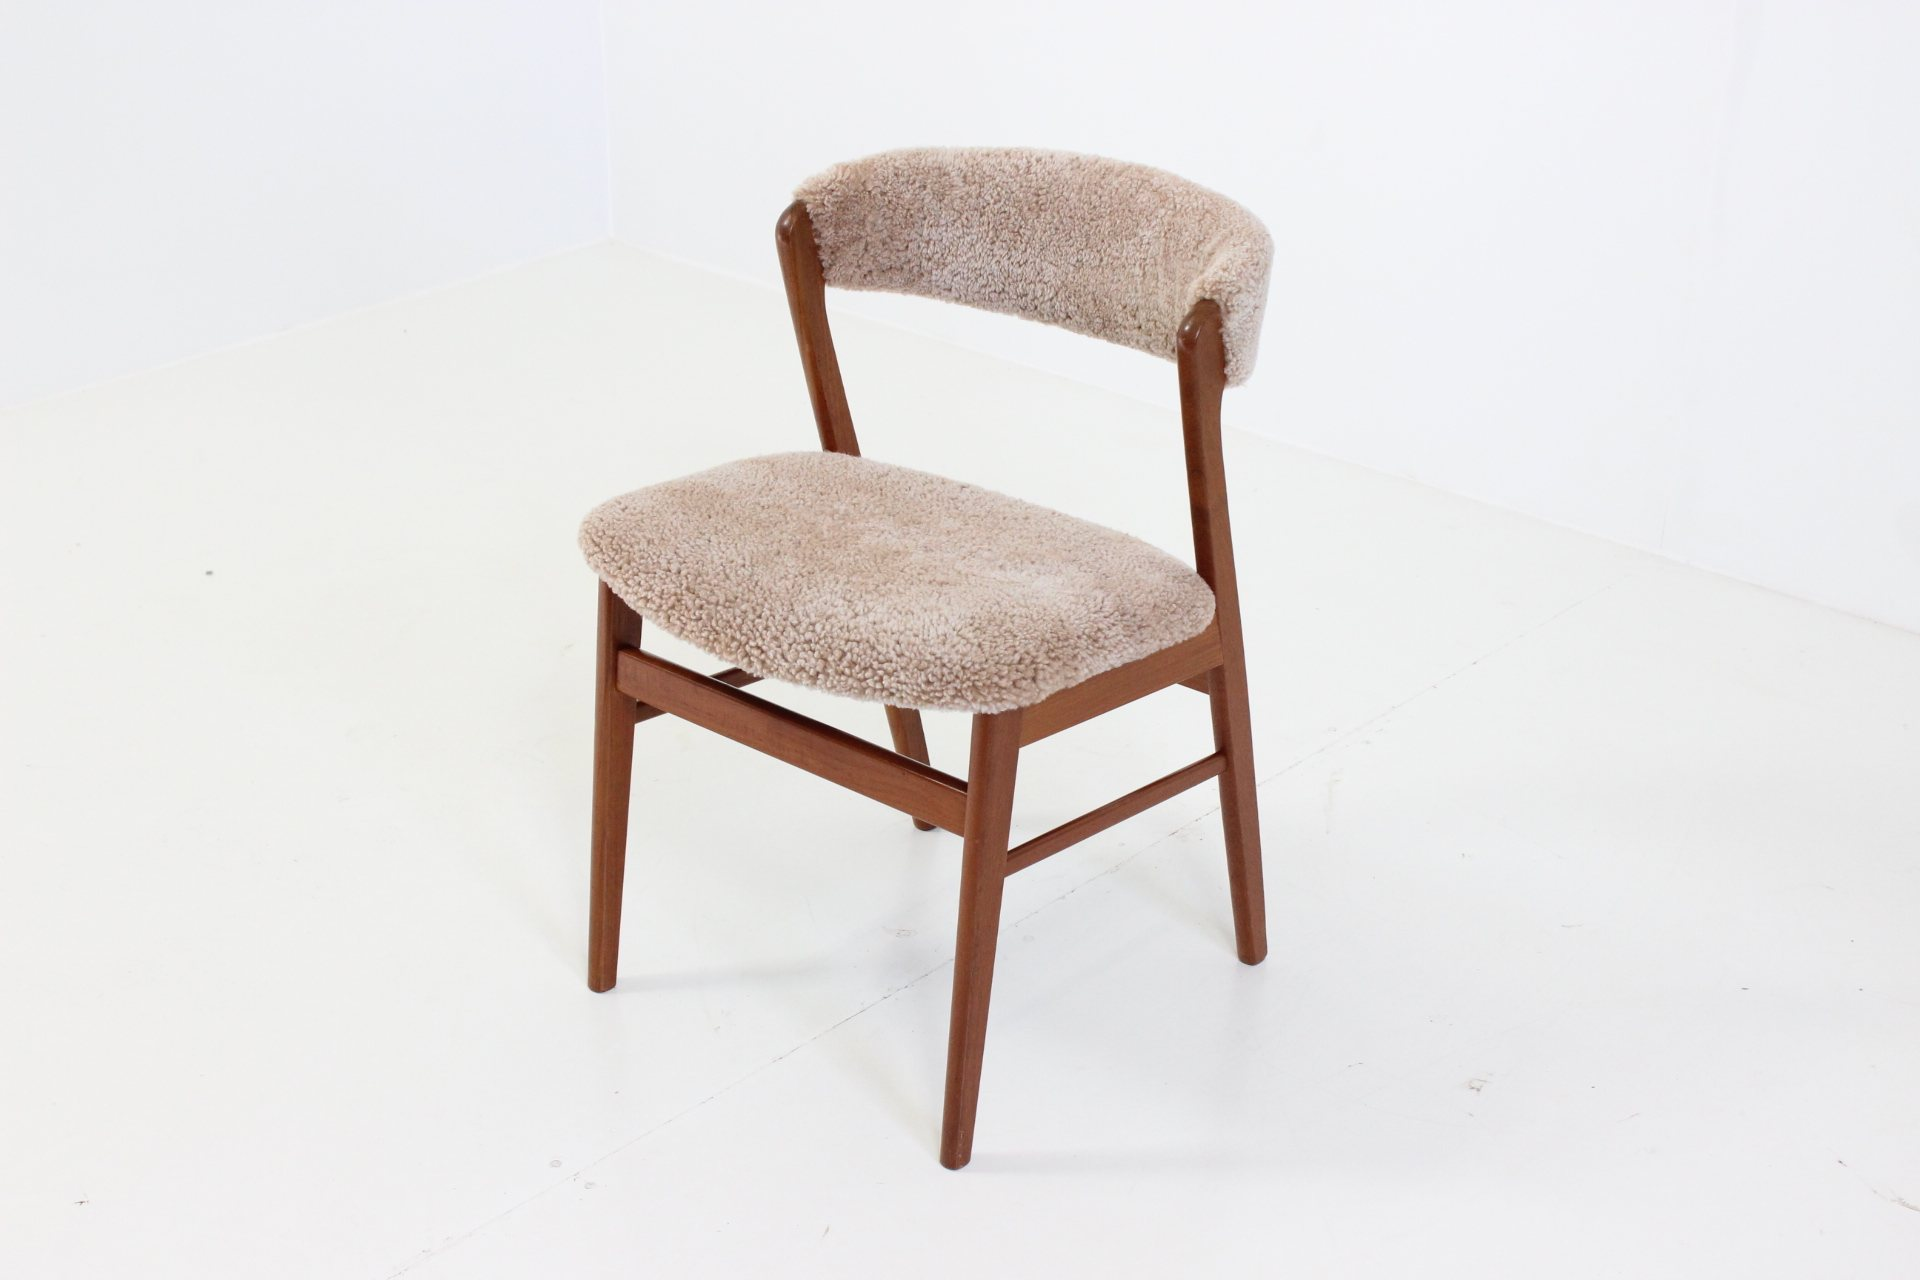 Side chair by kai kristiansen for h ng stolefabrik davint design - Kai kristiansen chairs ...